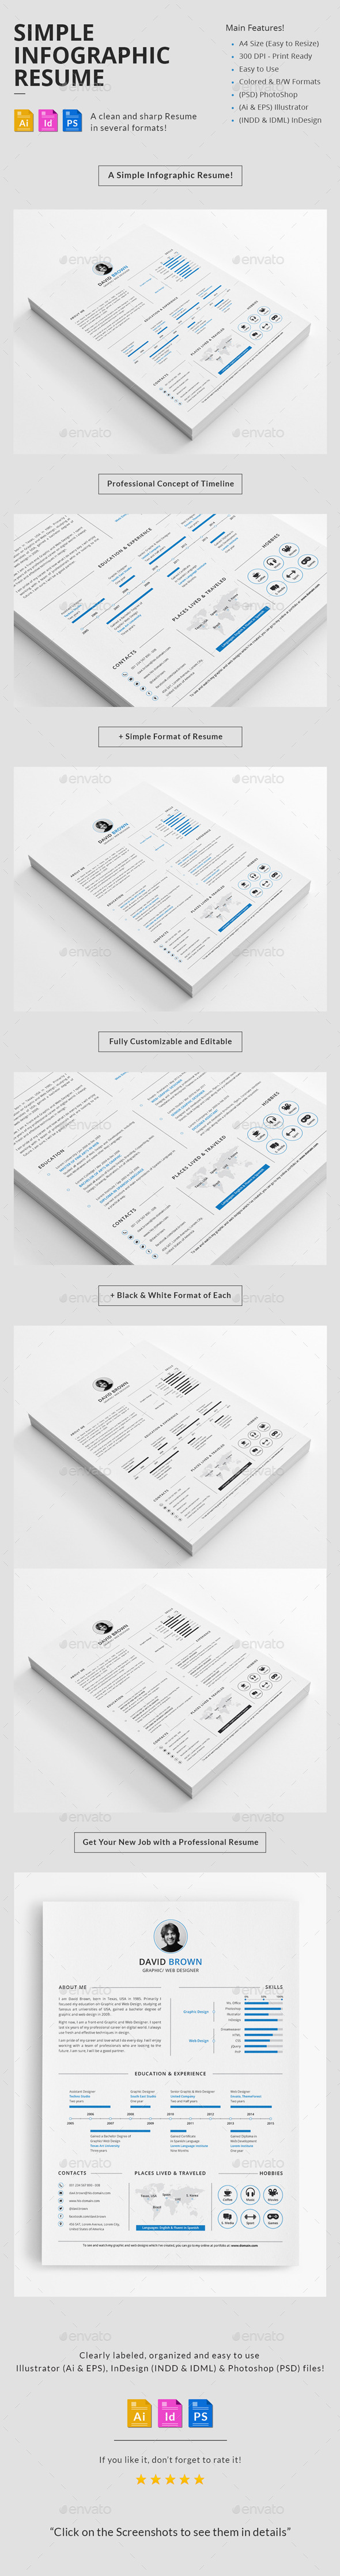 GraphicRiver Simple Infographic Resume 11259646